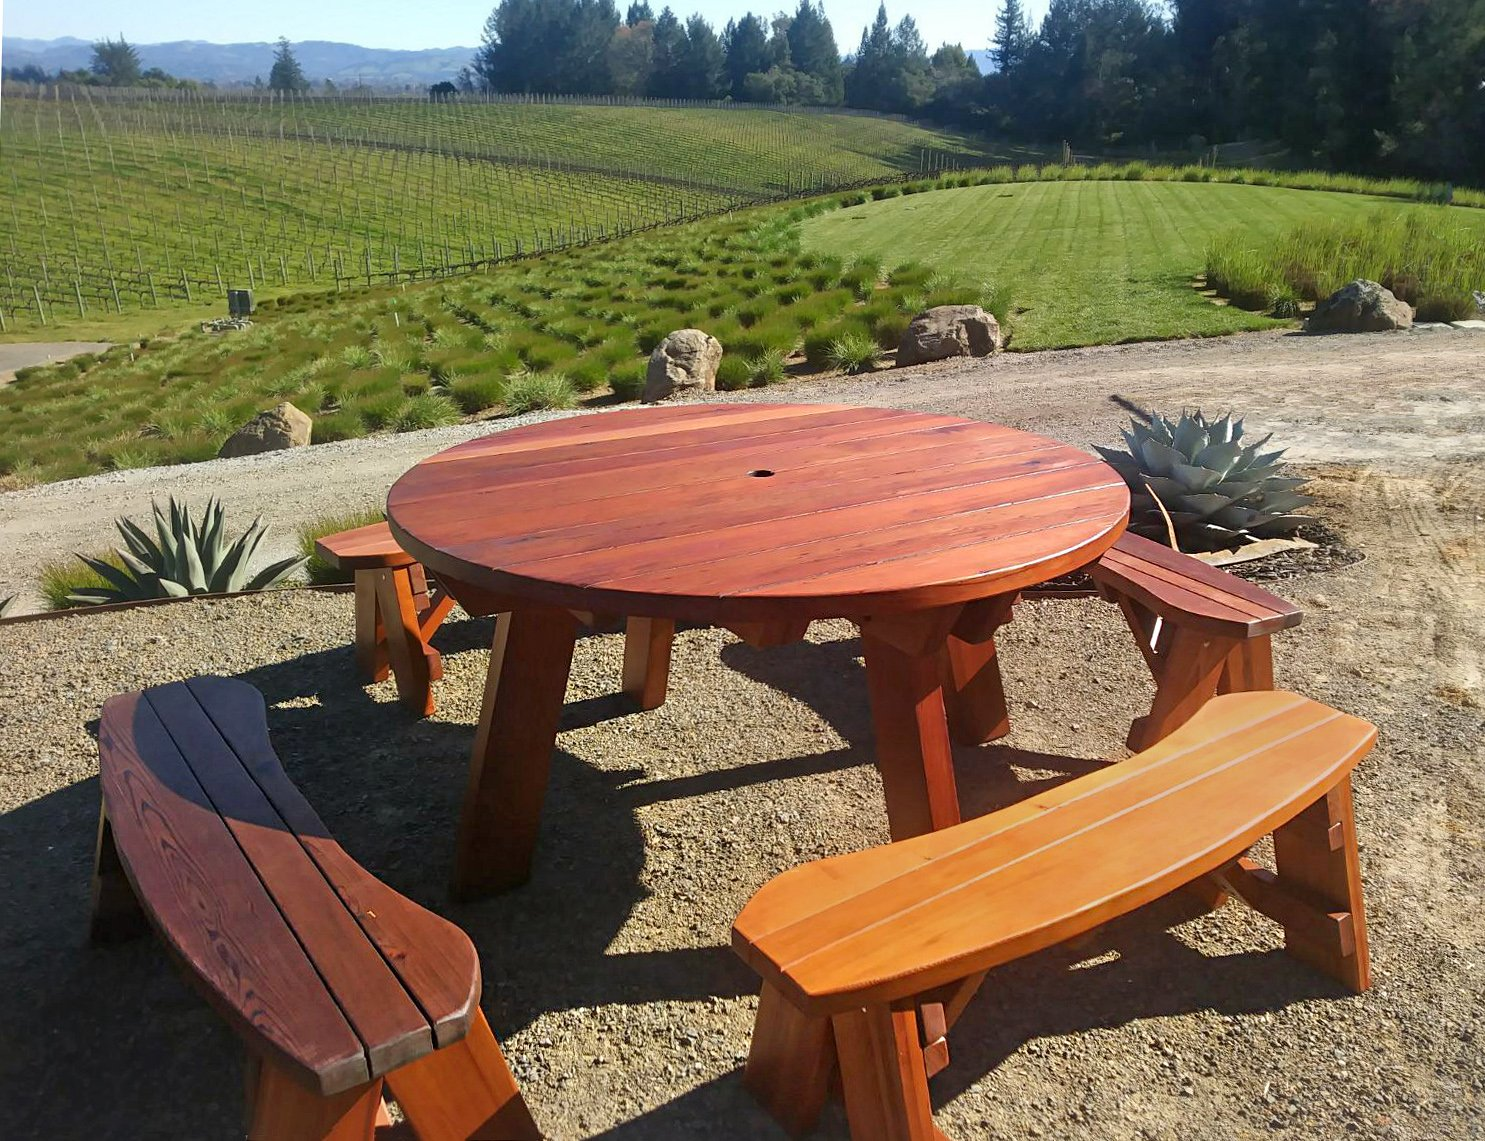 Superieur ... Round Picnic Table (Options: 5u0027 Diameter, Unattached Benches, Redwood,  Round ...